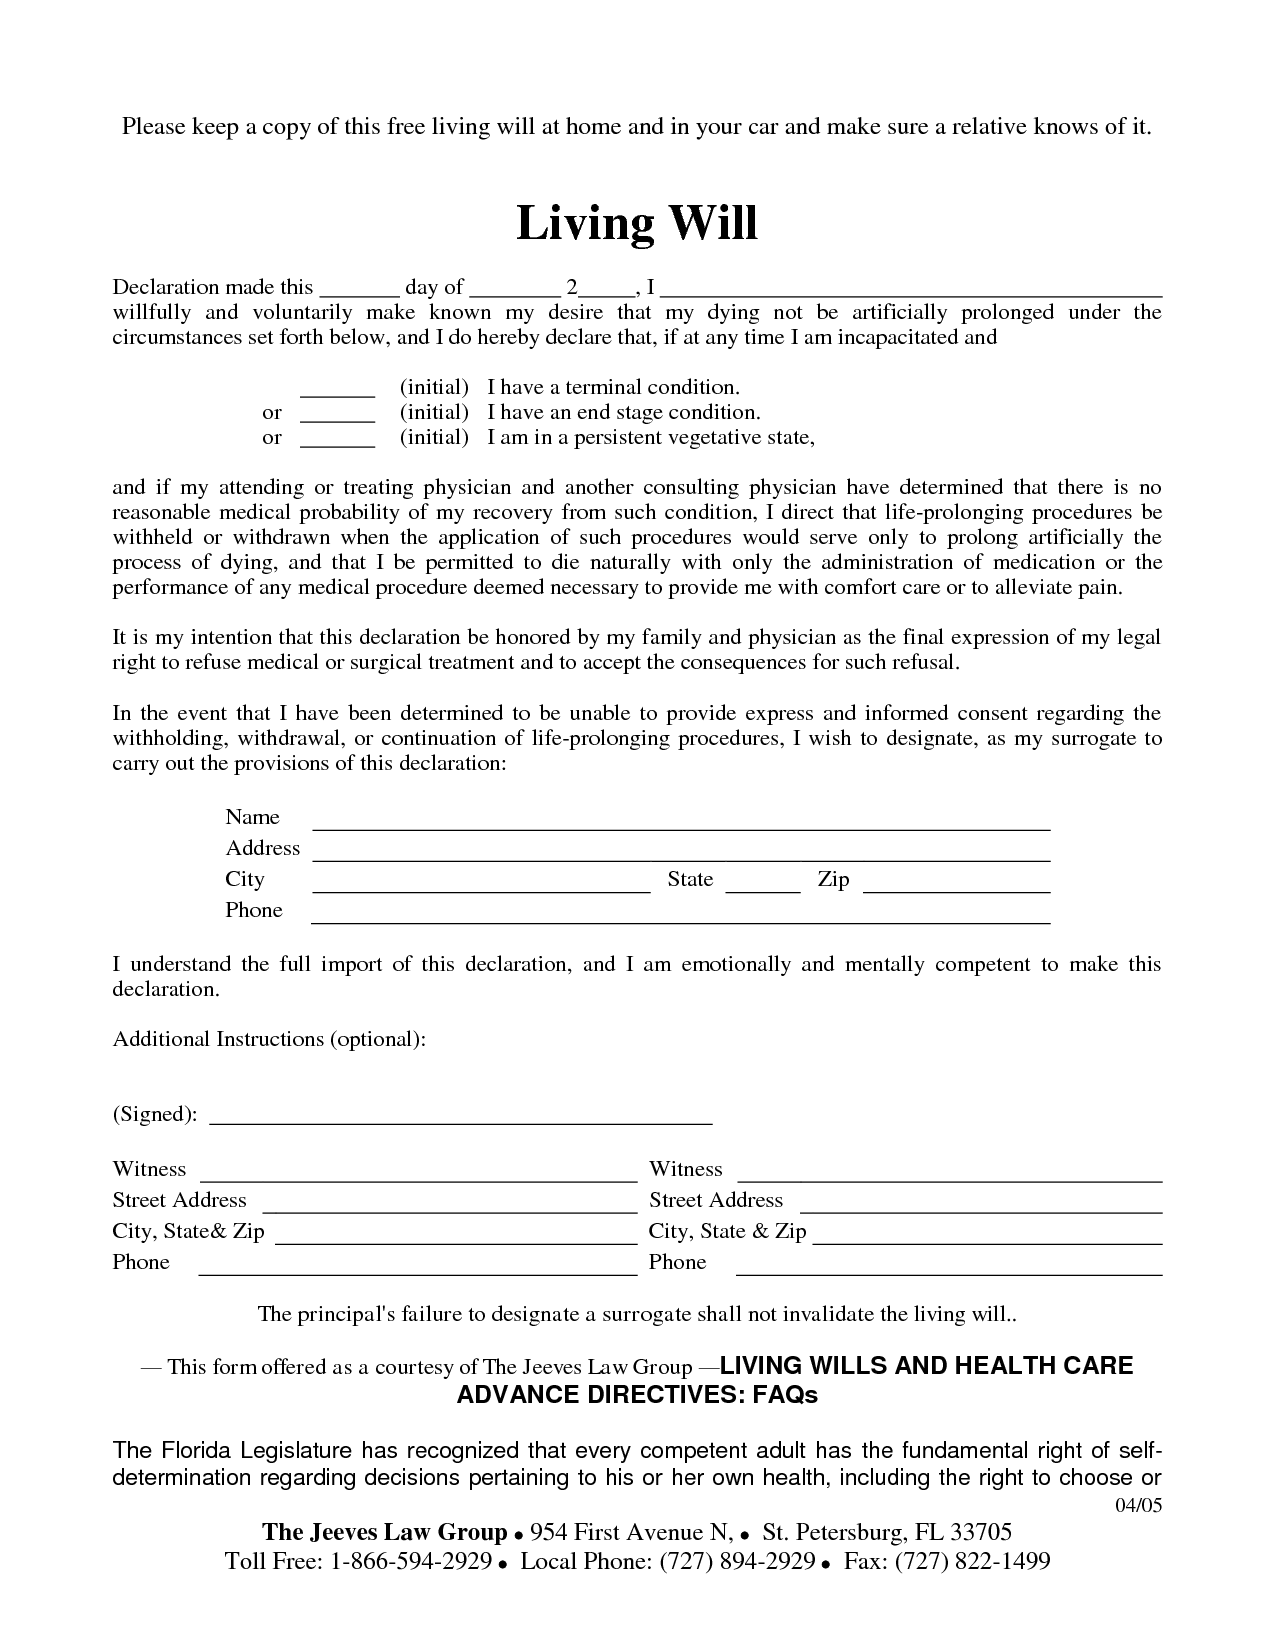 Free copy of living will by richard cataman living will for Sample of living will template